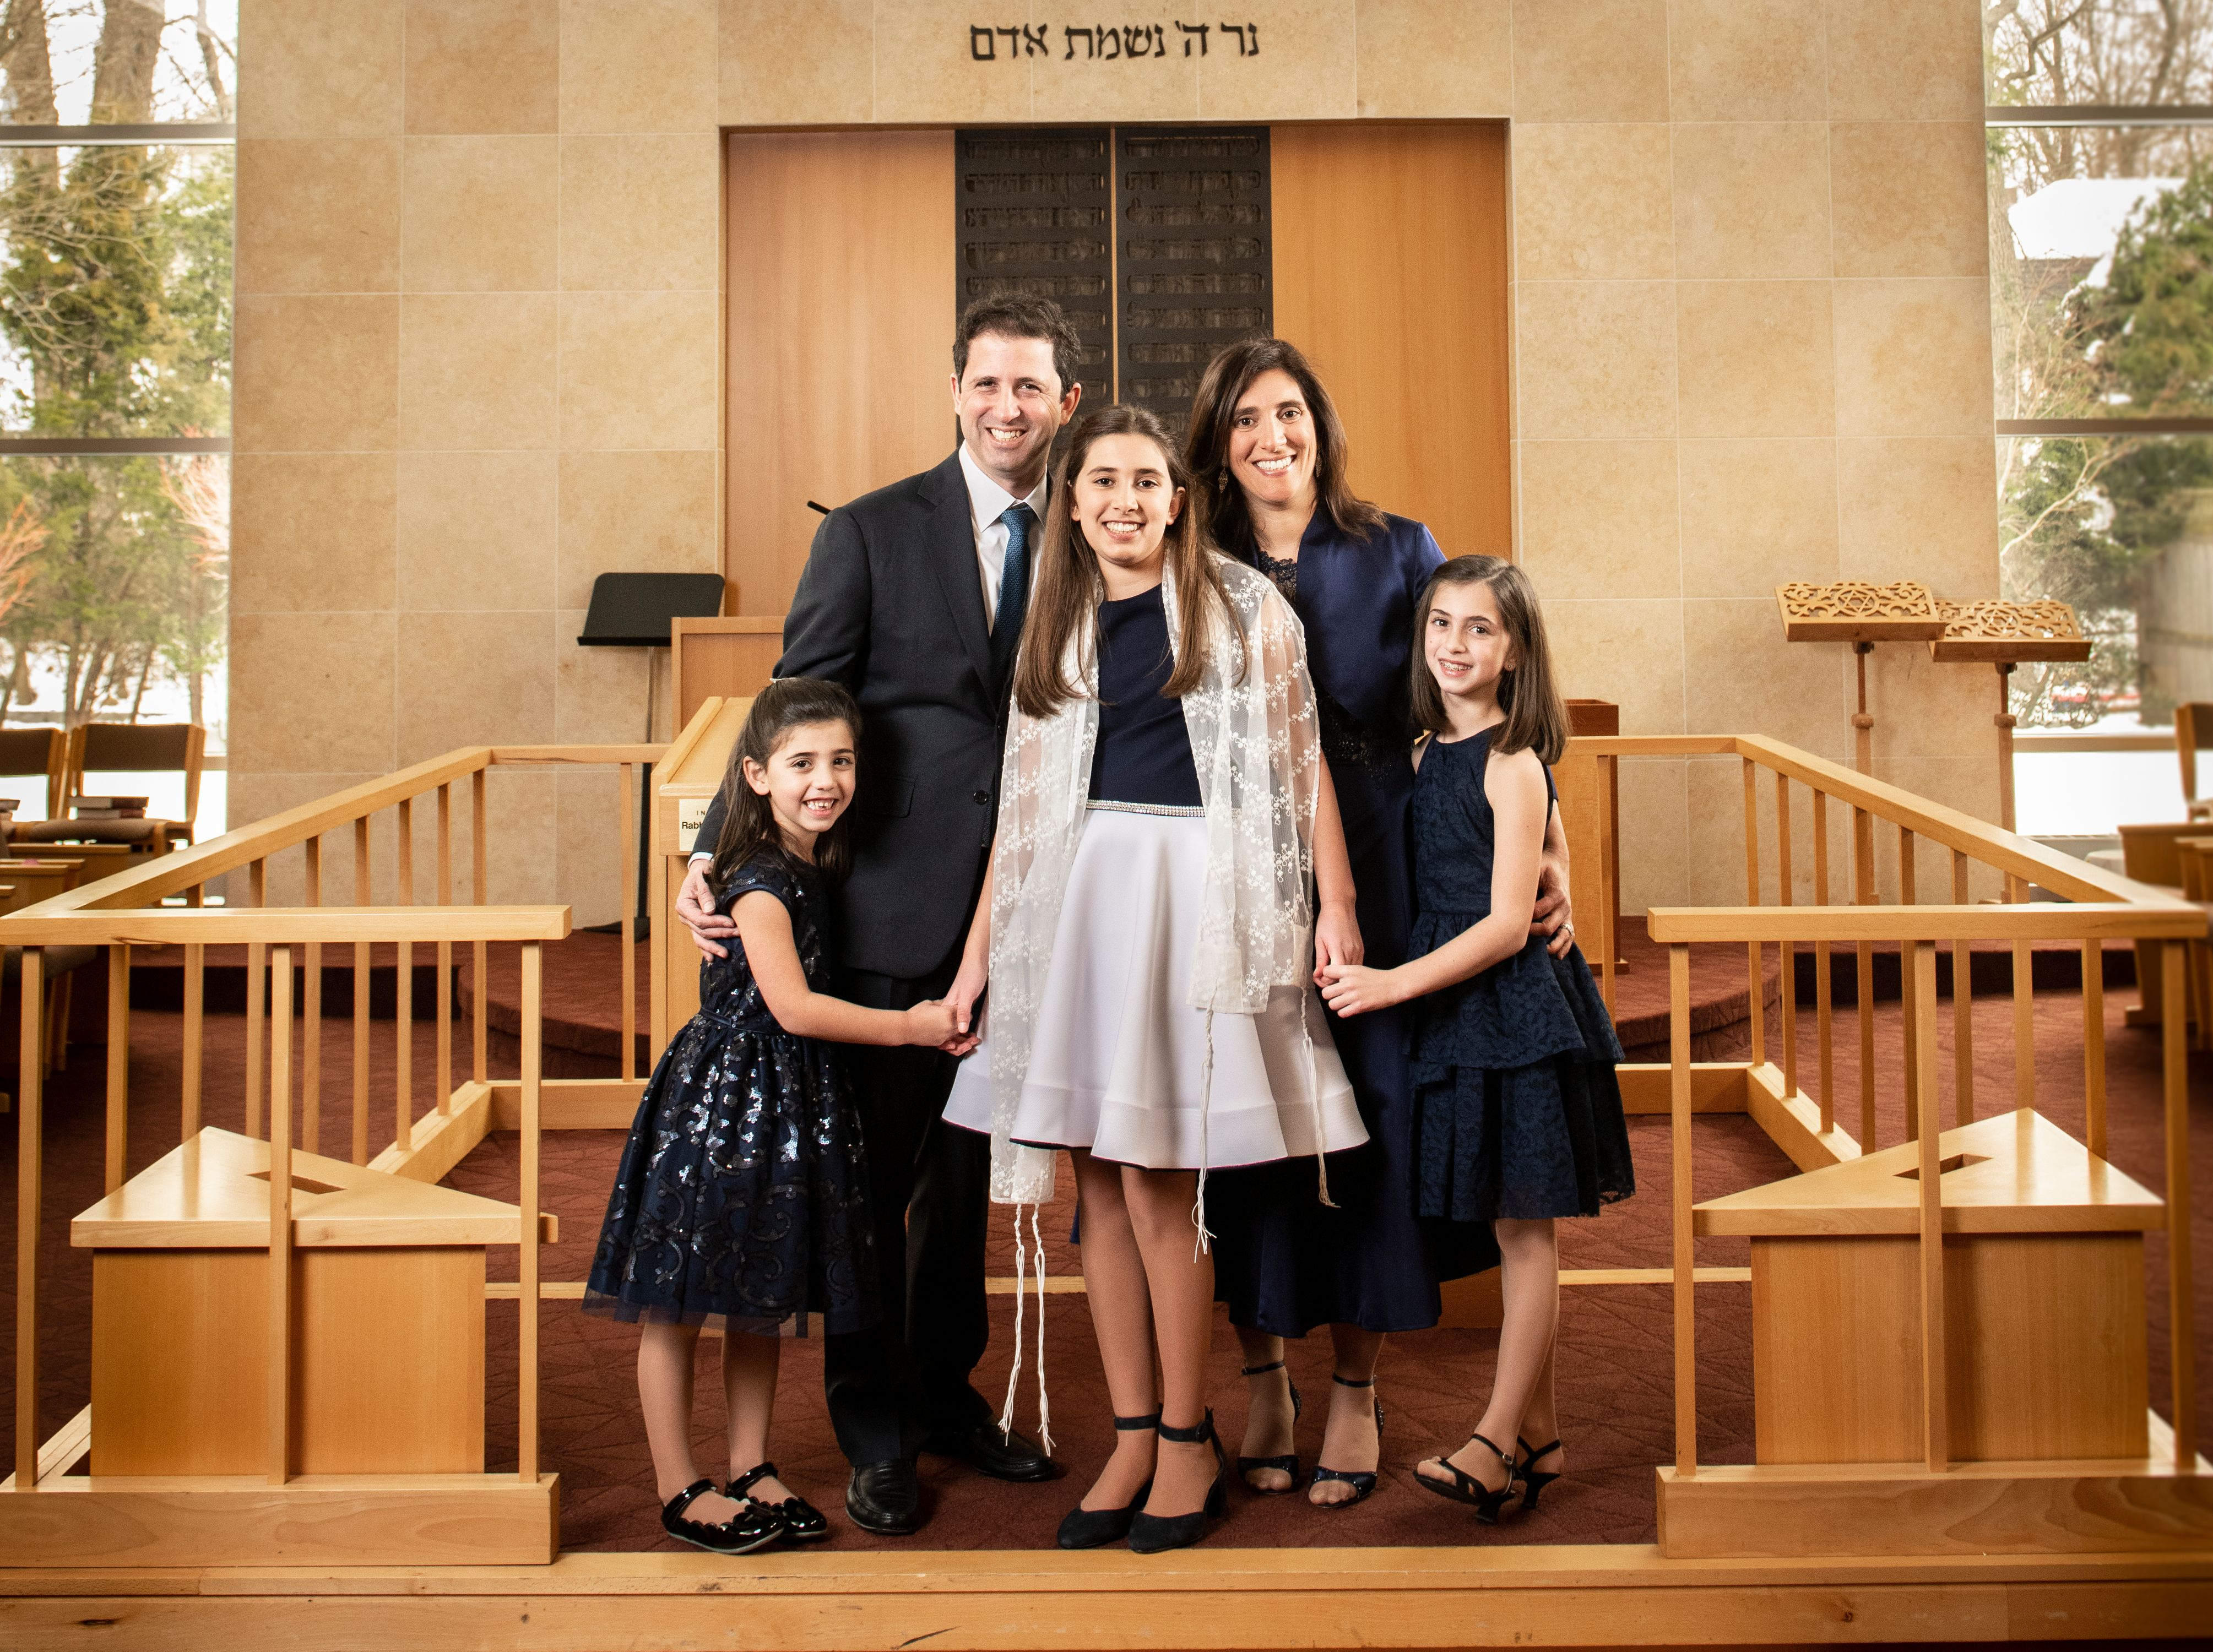 Family Bat Mitzvah Photography in Westchester, New York